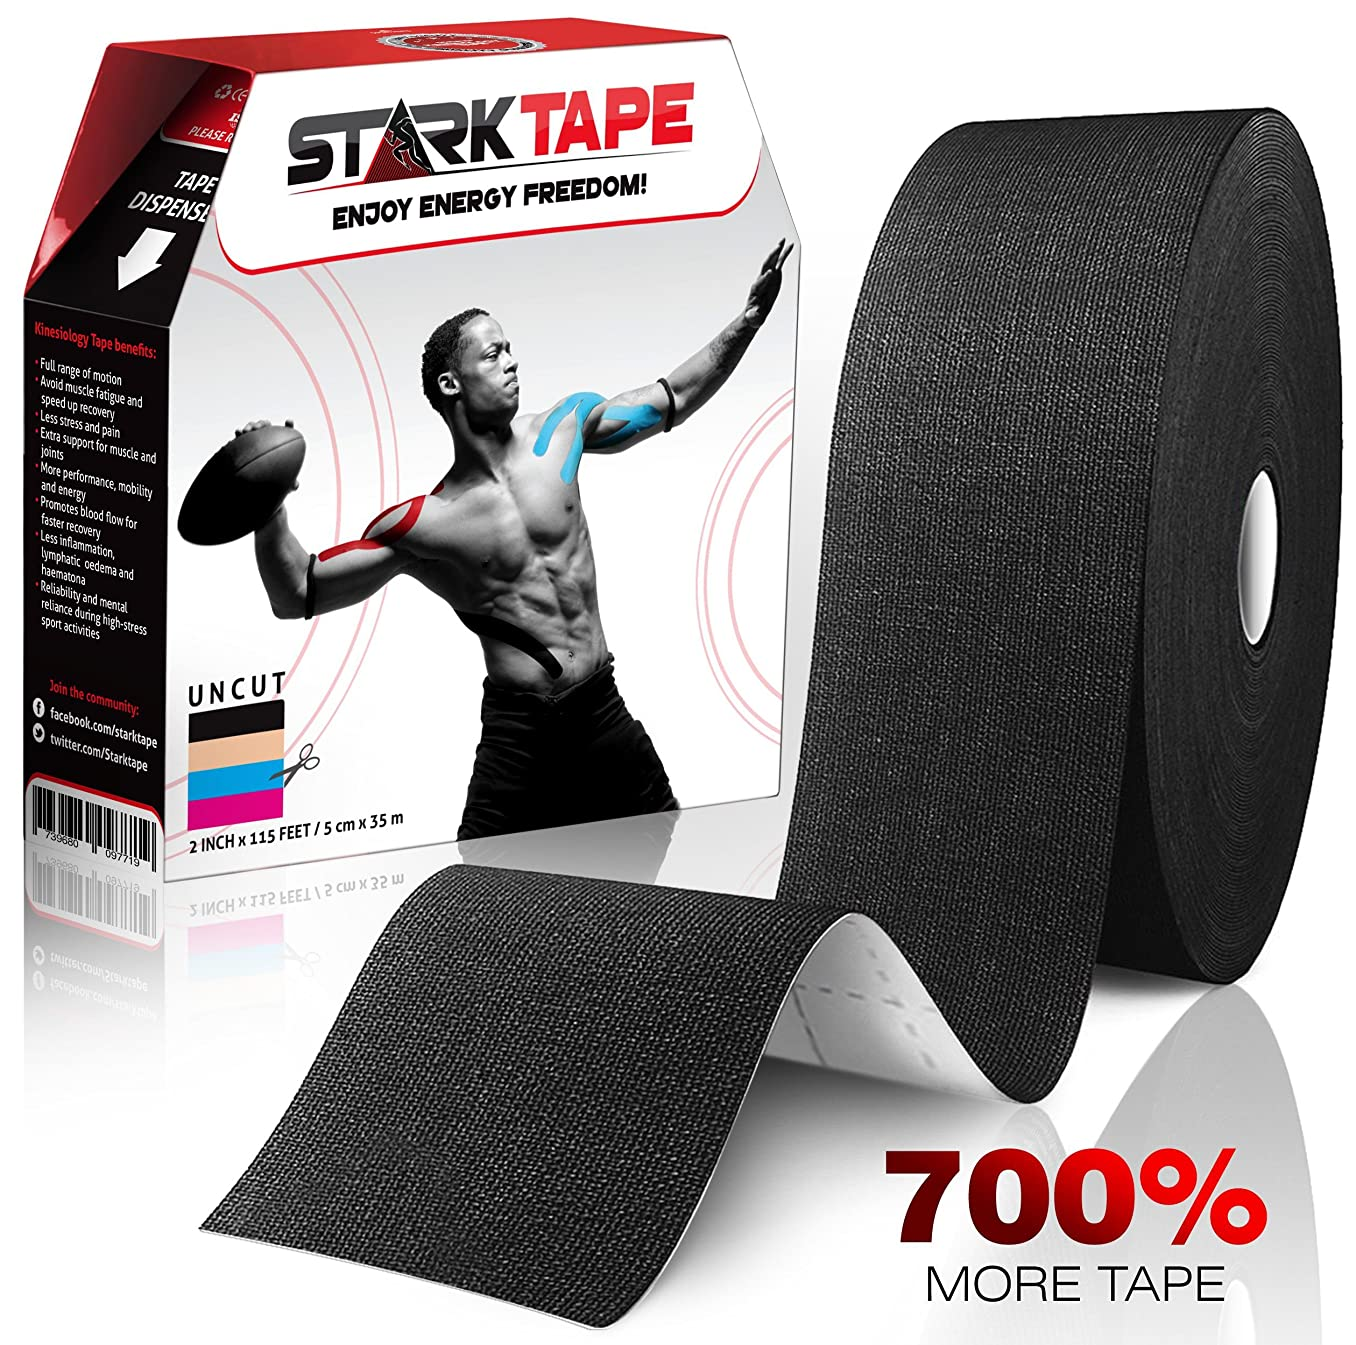 Kinesiology Tape Bulk | Designed to Help Boost Athletic Performance, Prevent Joint, Muscle Pain and Ease Inflammation | Easy to Apply, 97% Natural Cotton /3% Spandex